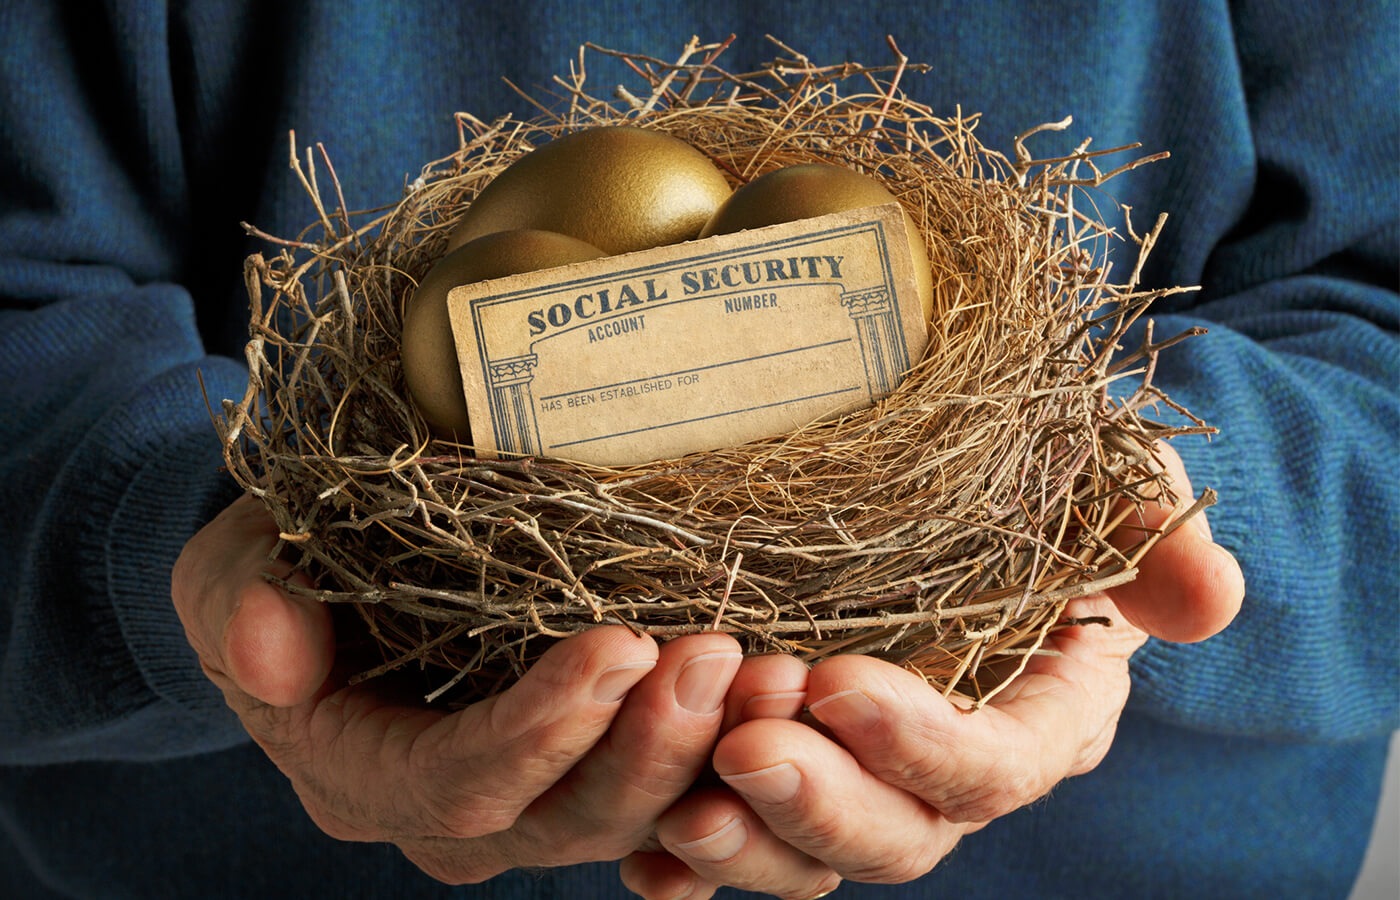 How to Replace a Social Security Card - How To Get A Brand New Social Security Number